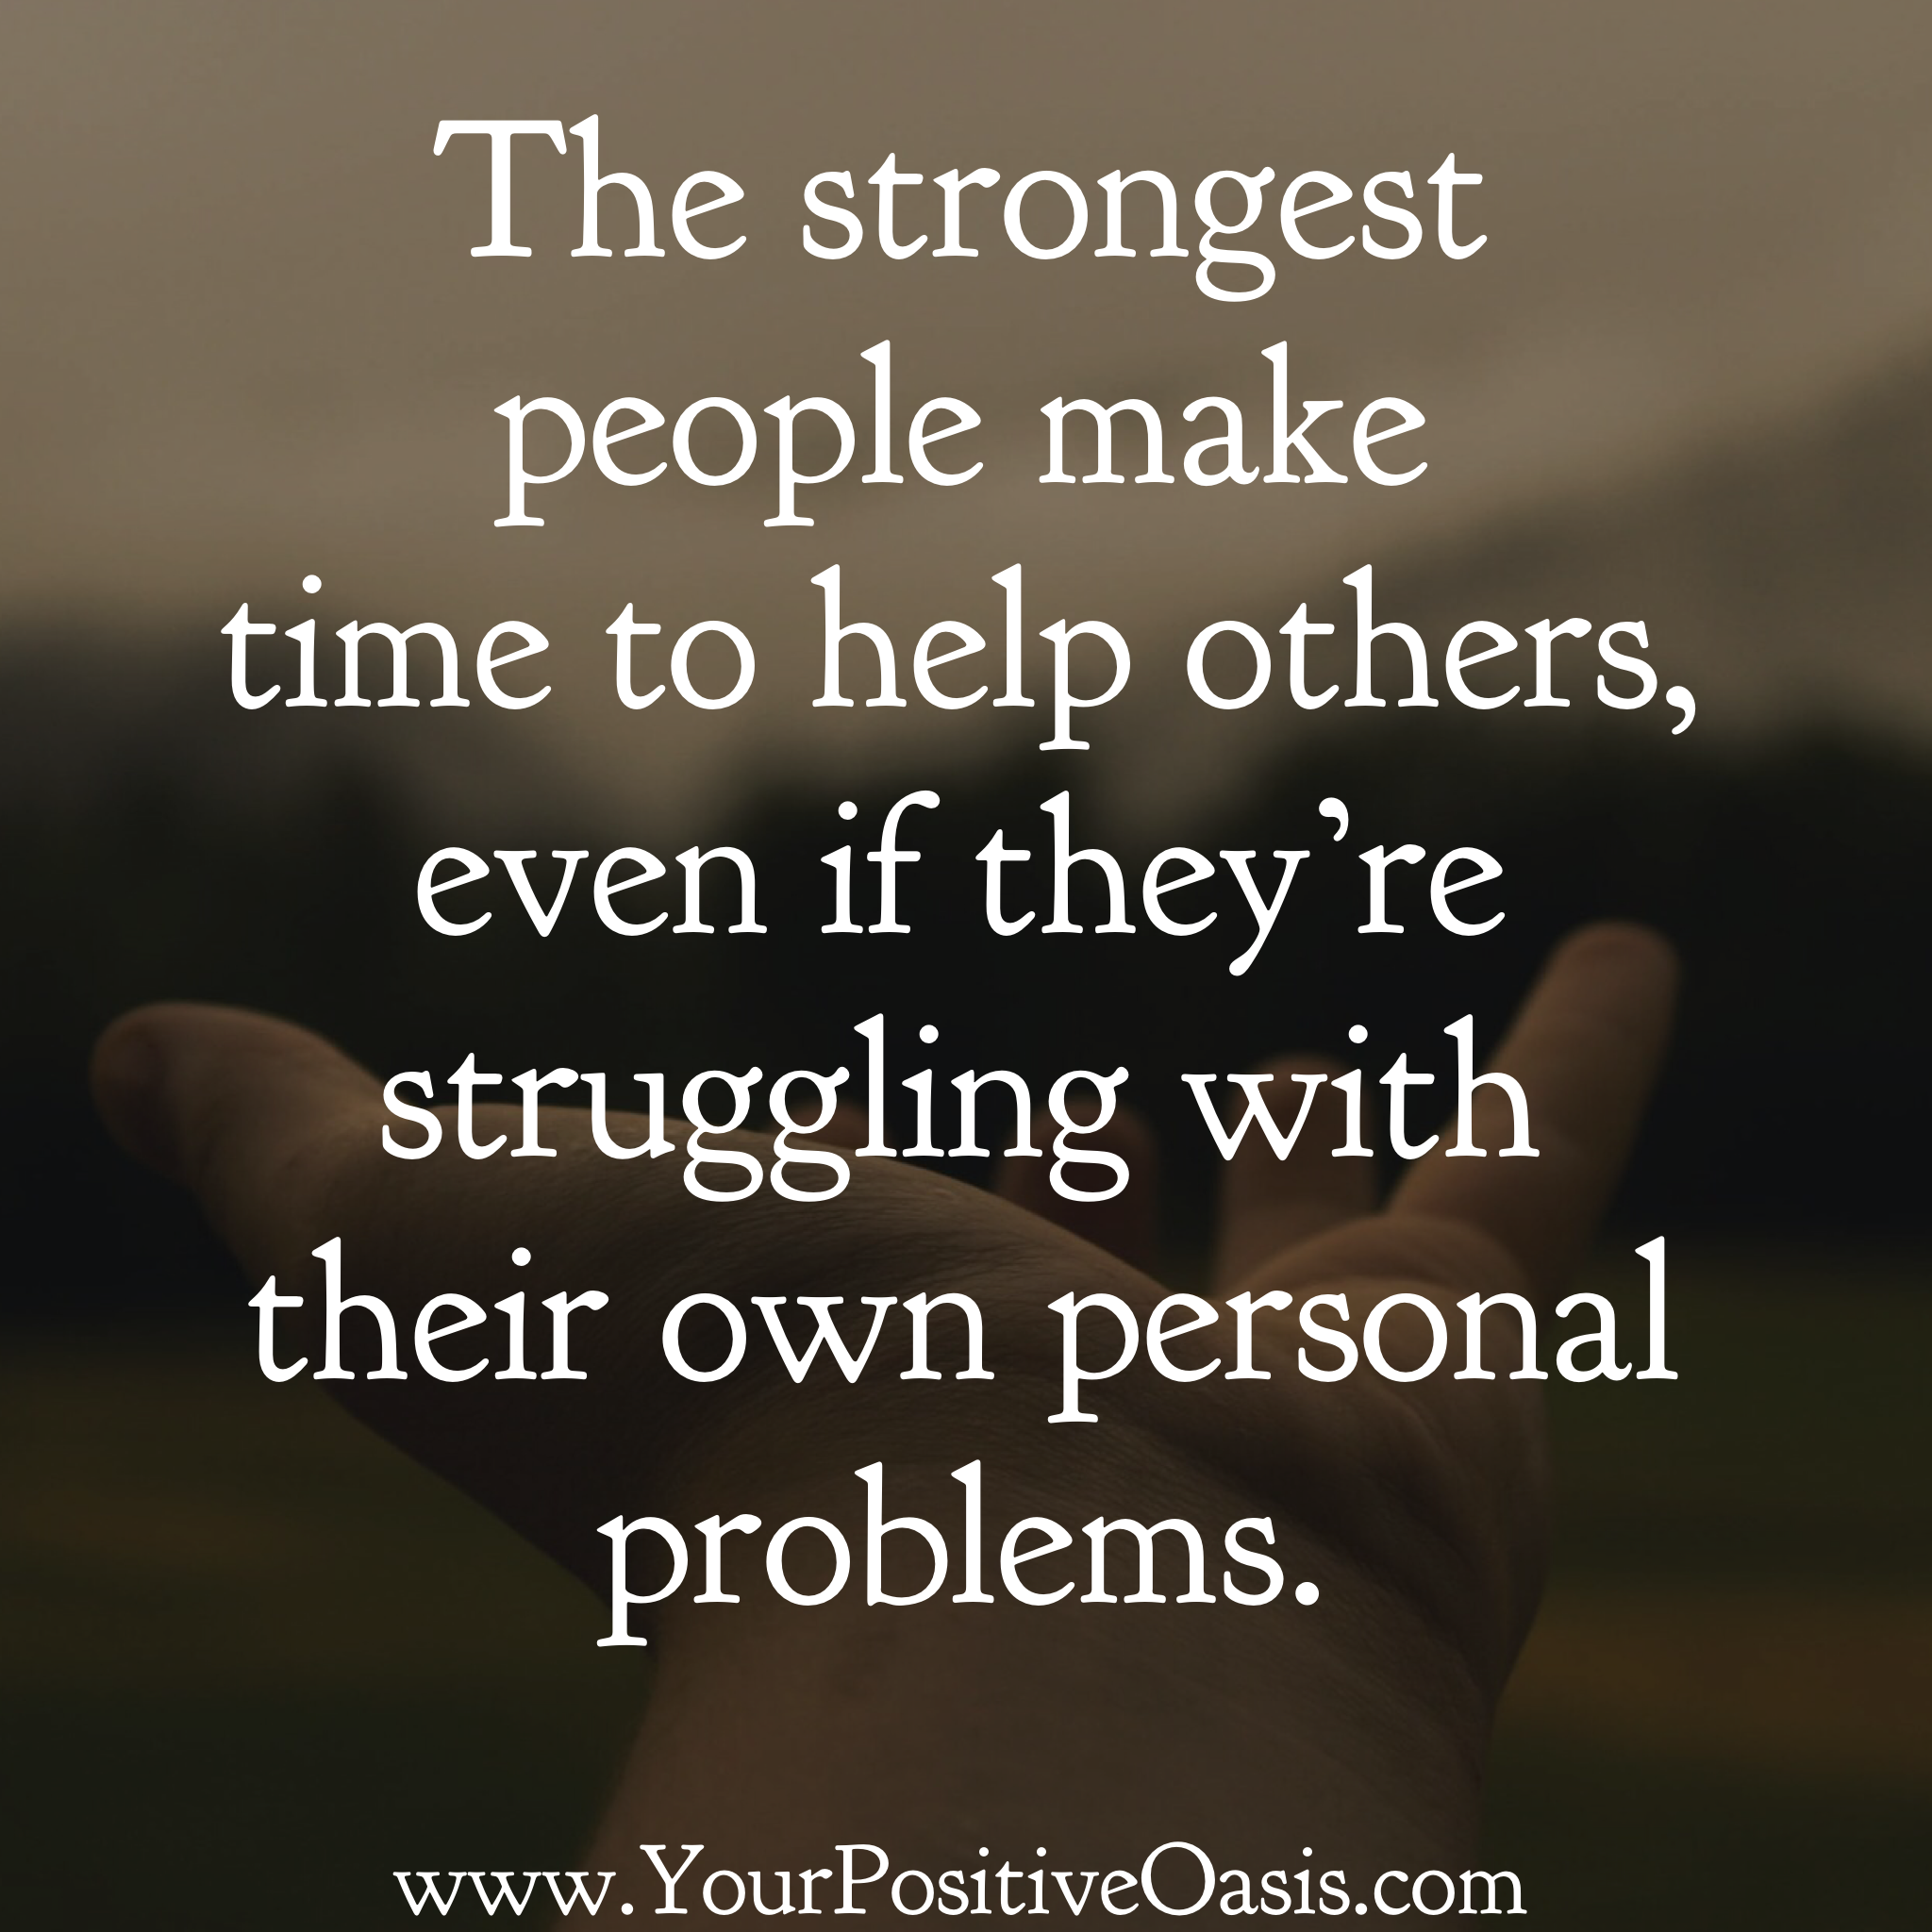 Home   Your Positive Oasis   Problem quotes, Helping others quotes ...